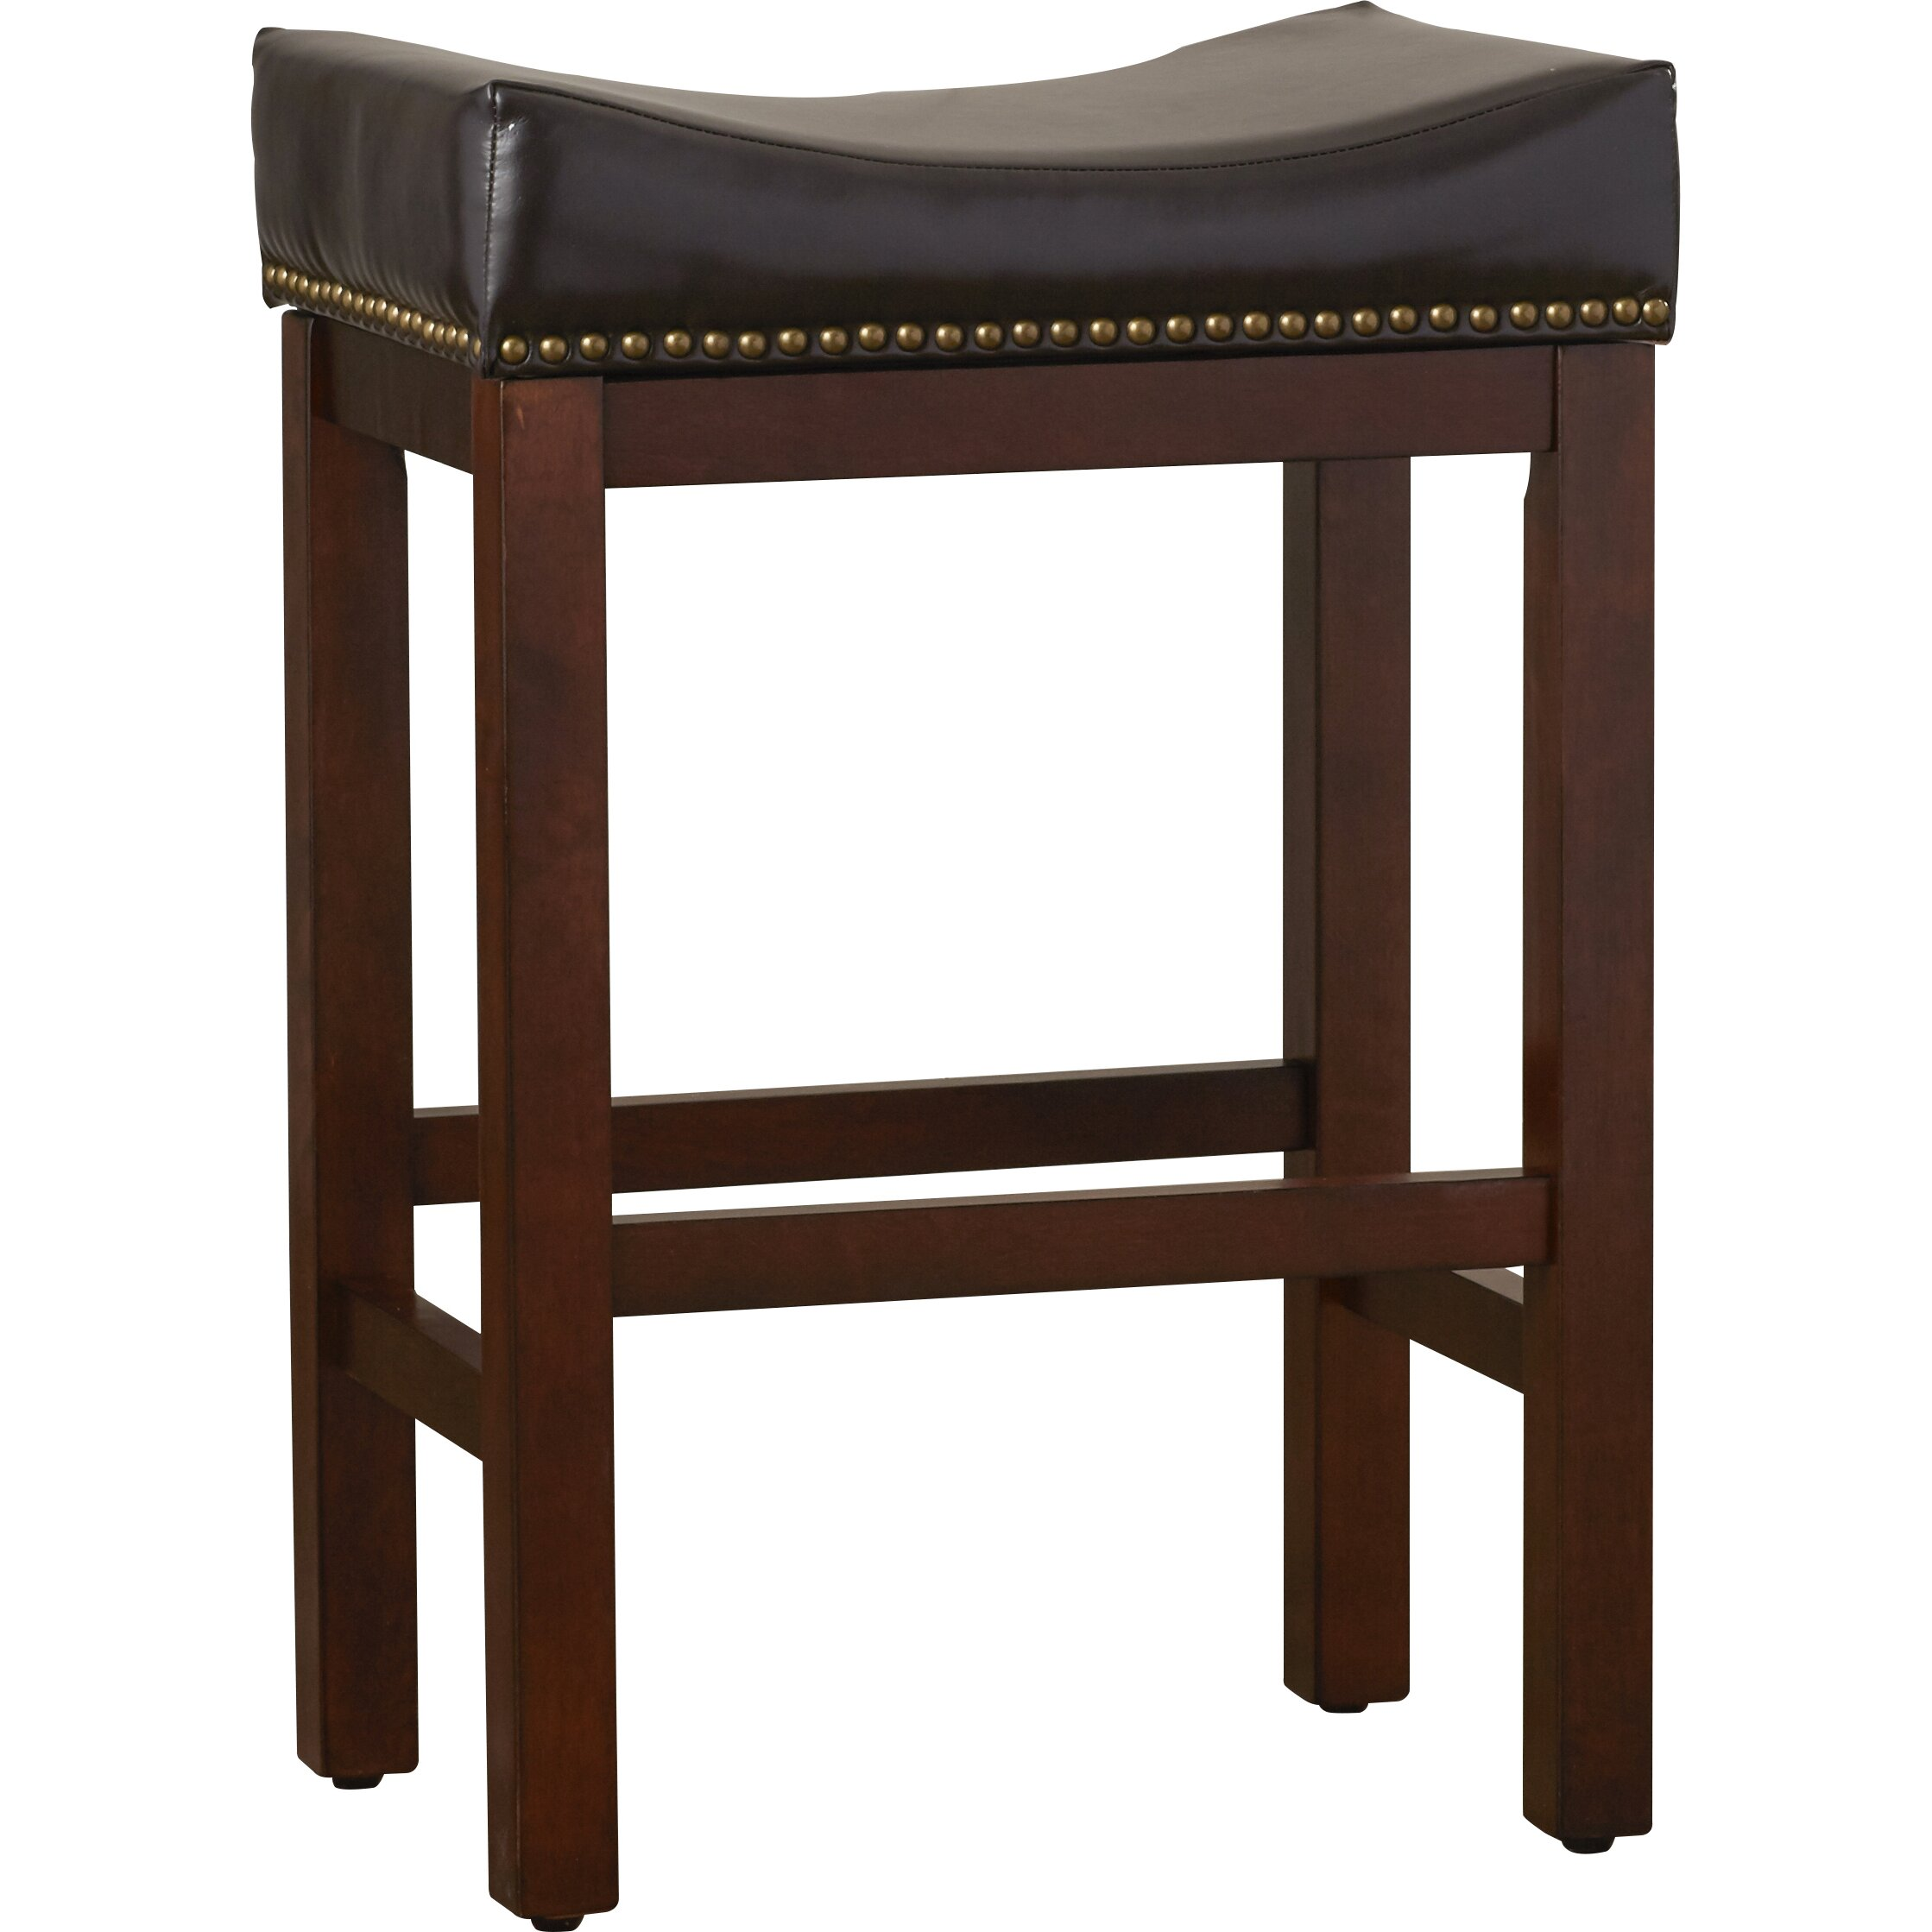 Darby Home Co Nickerson 26 Quot Bar Stool Amp Reviews Wayfair Ca